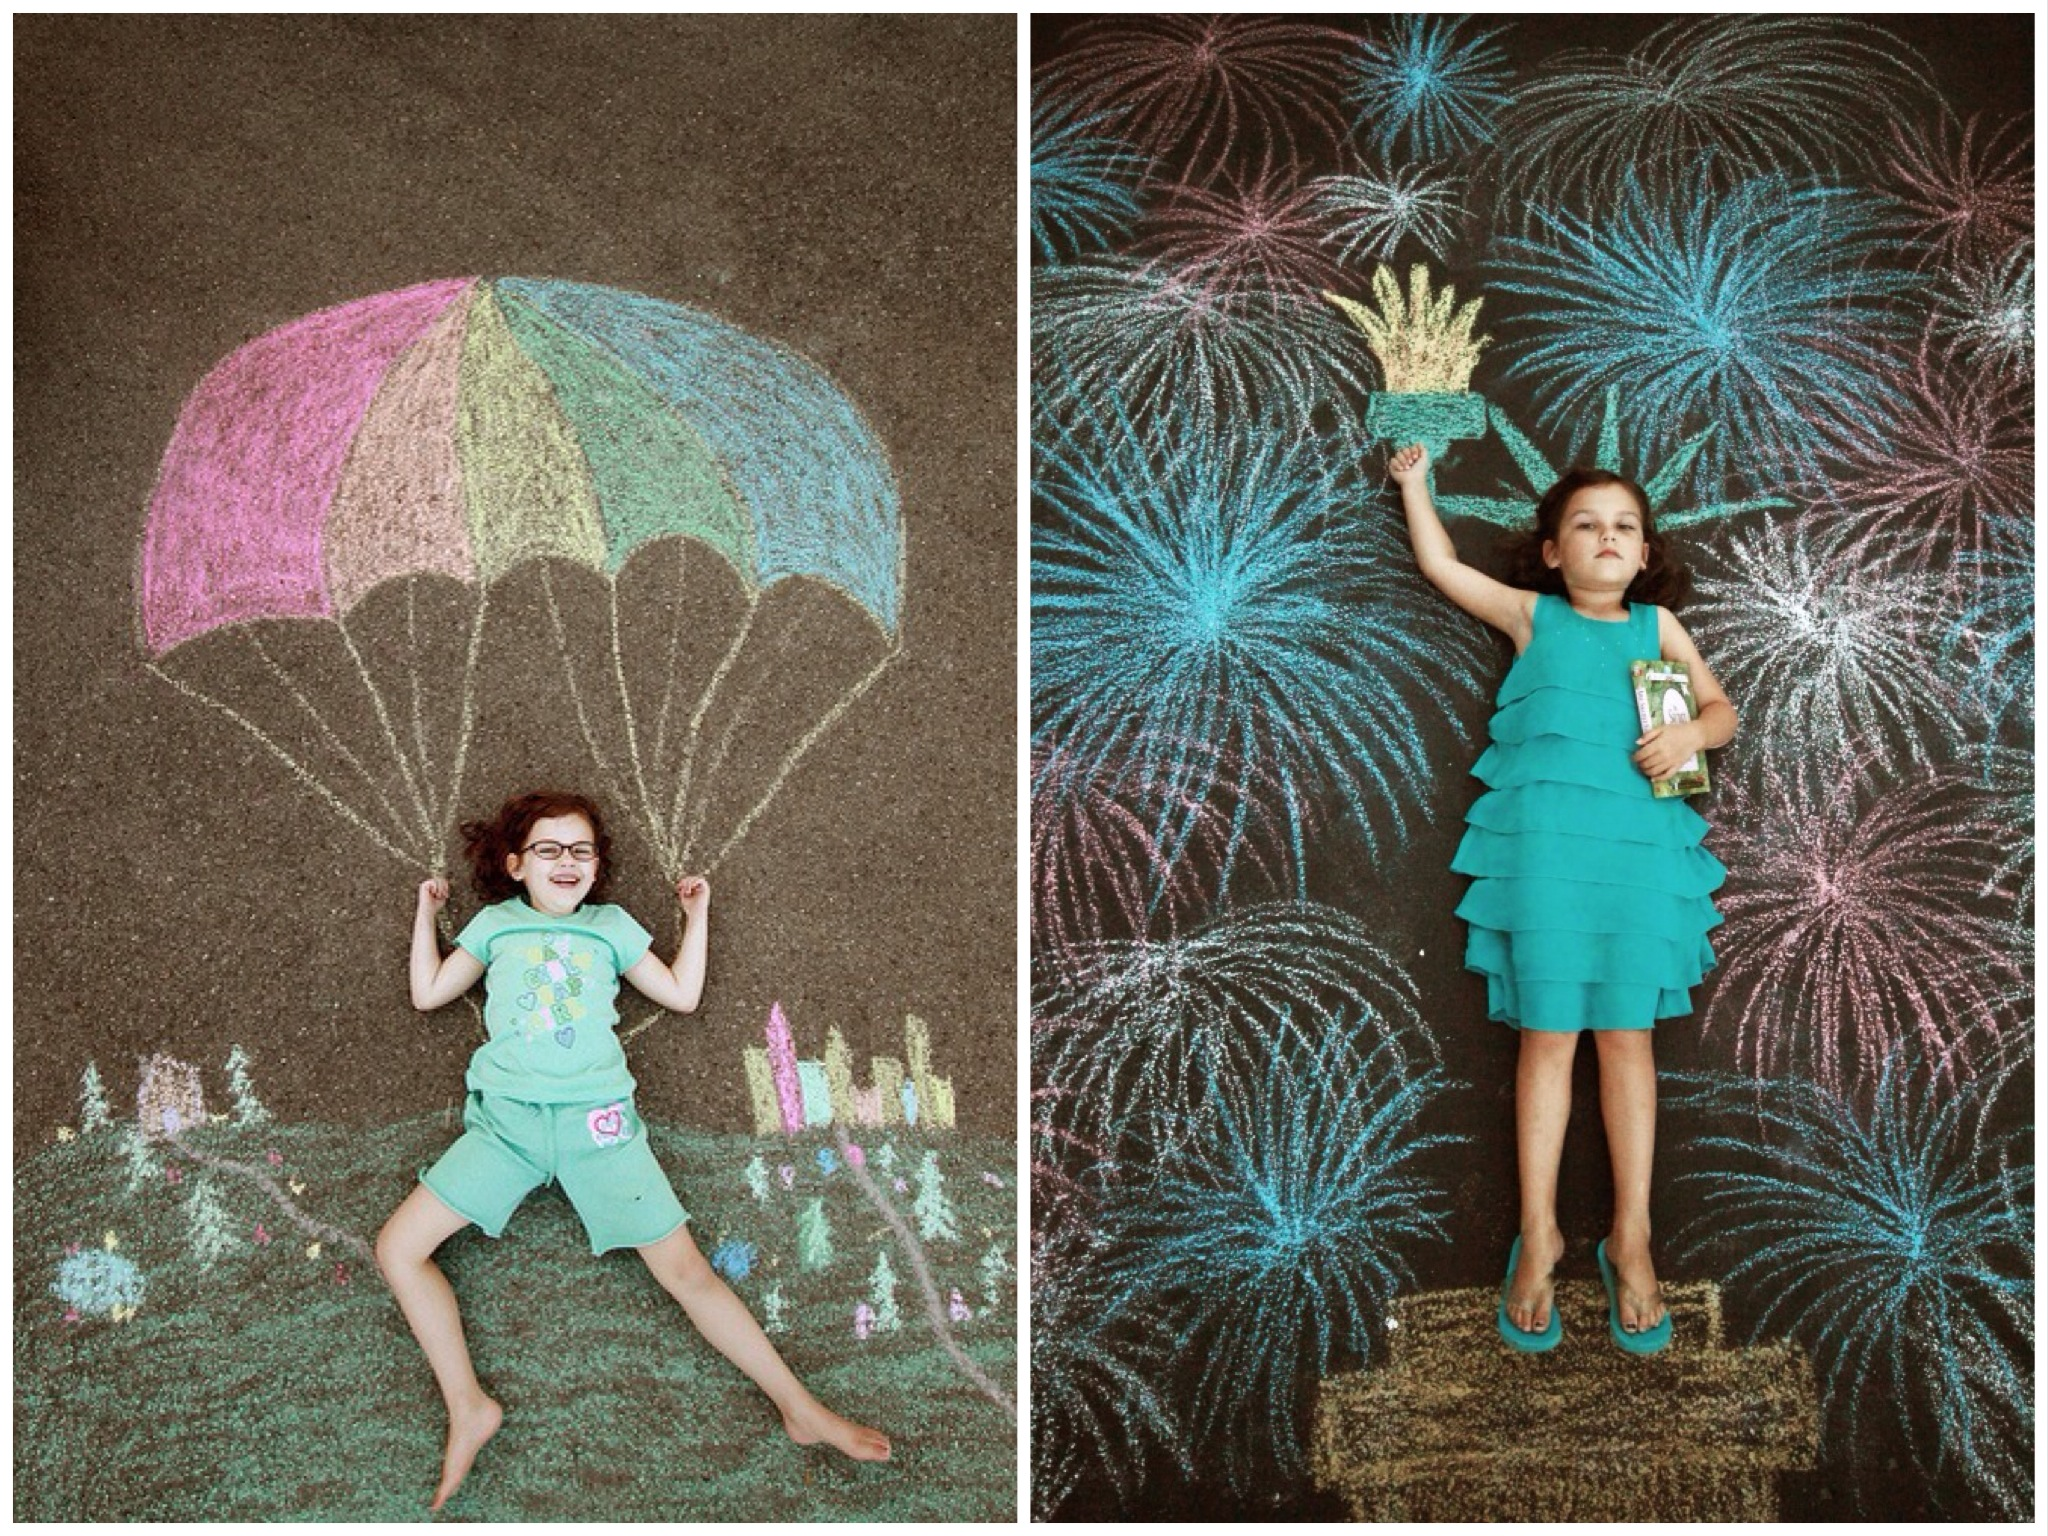 Design Your Own Dream Home Games Get Creative Sidewalk Chalk And Paint Art Projects Kids